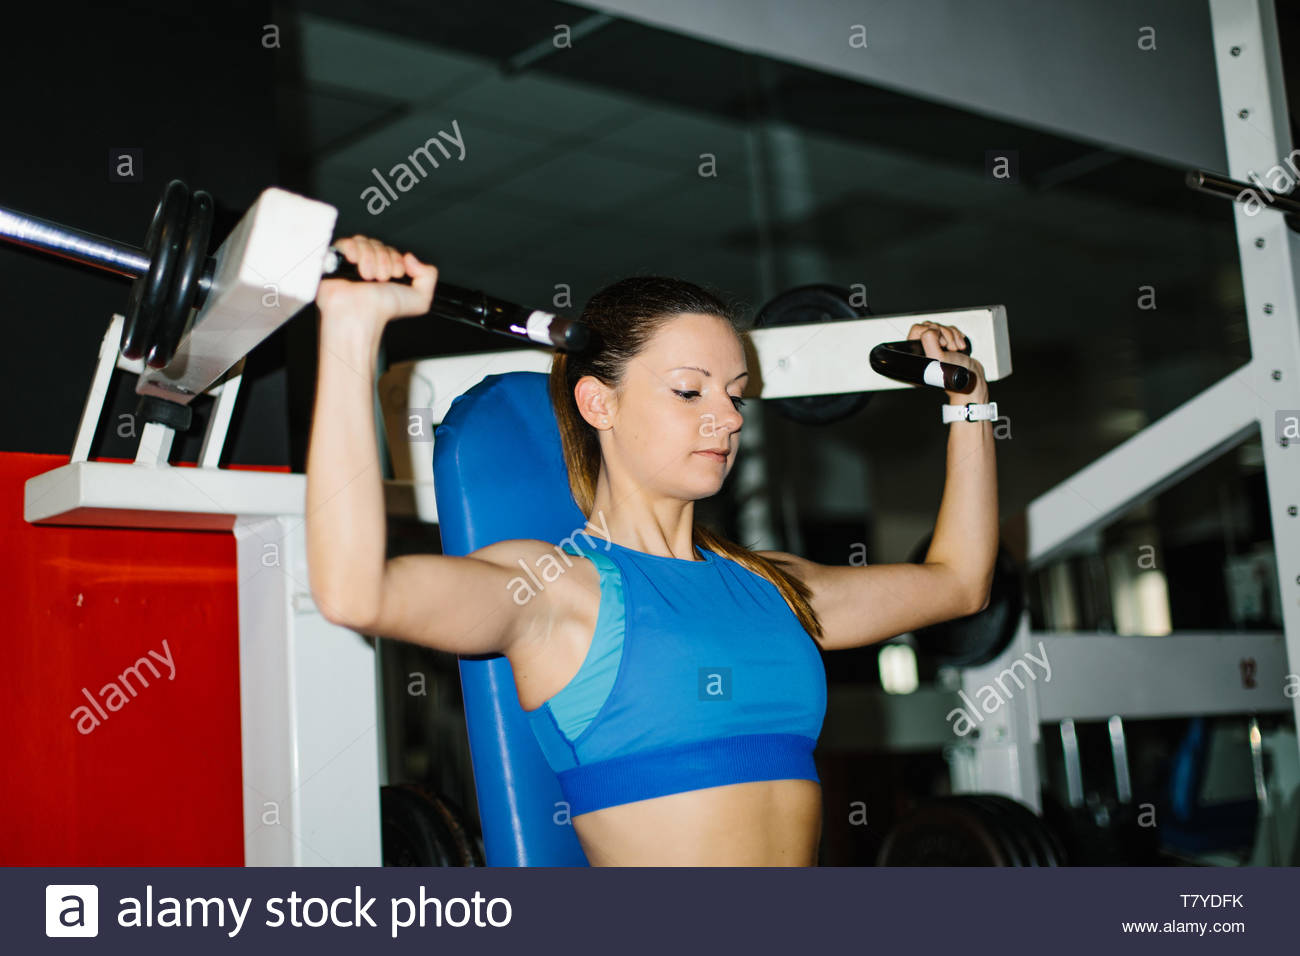 Young fitness woman working out in the gym. Shoulder press machine exercise. - Stock Image